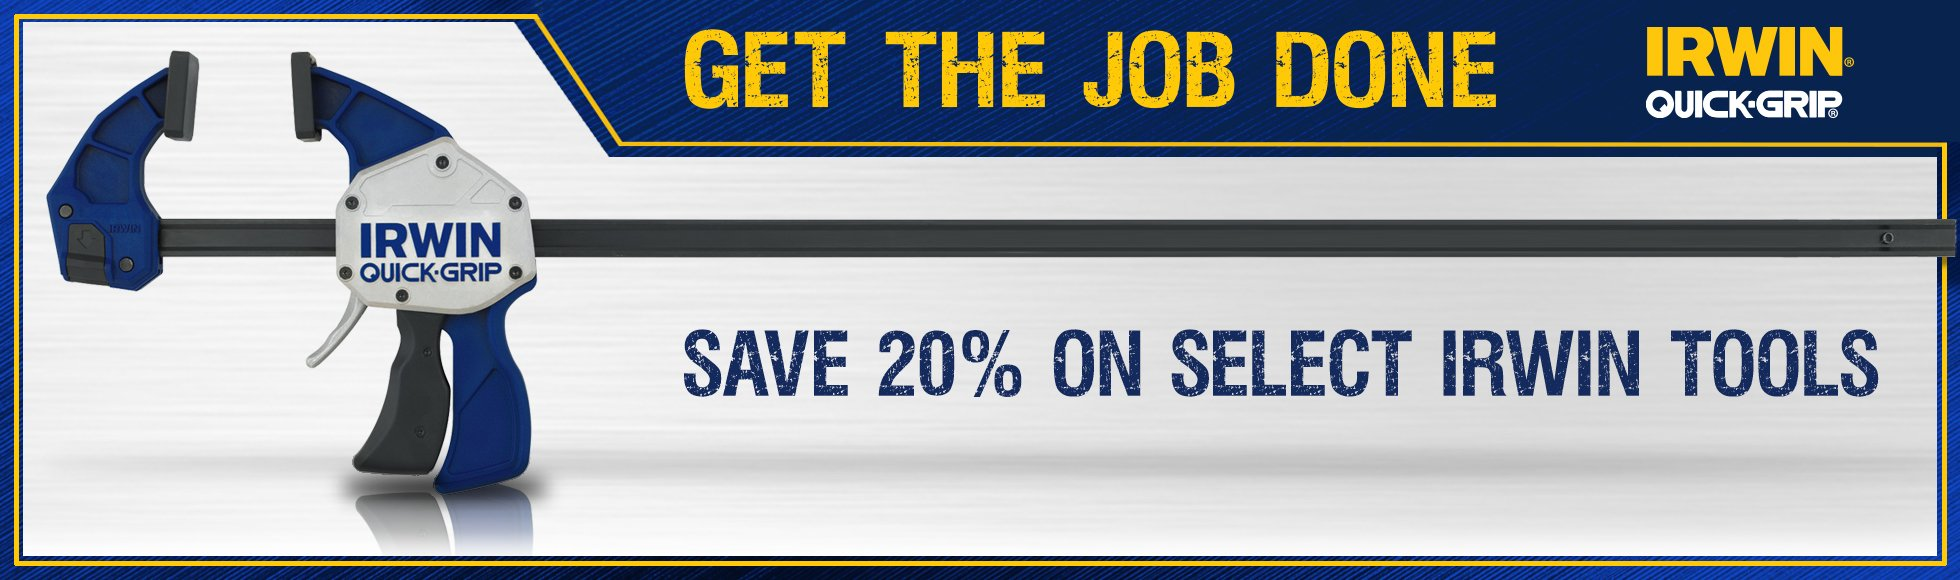 20% off select Irwin tools